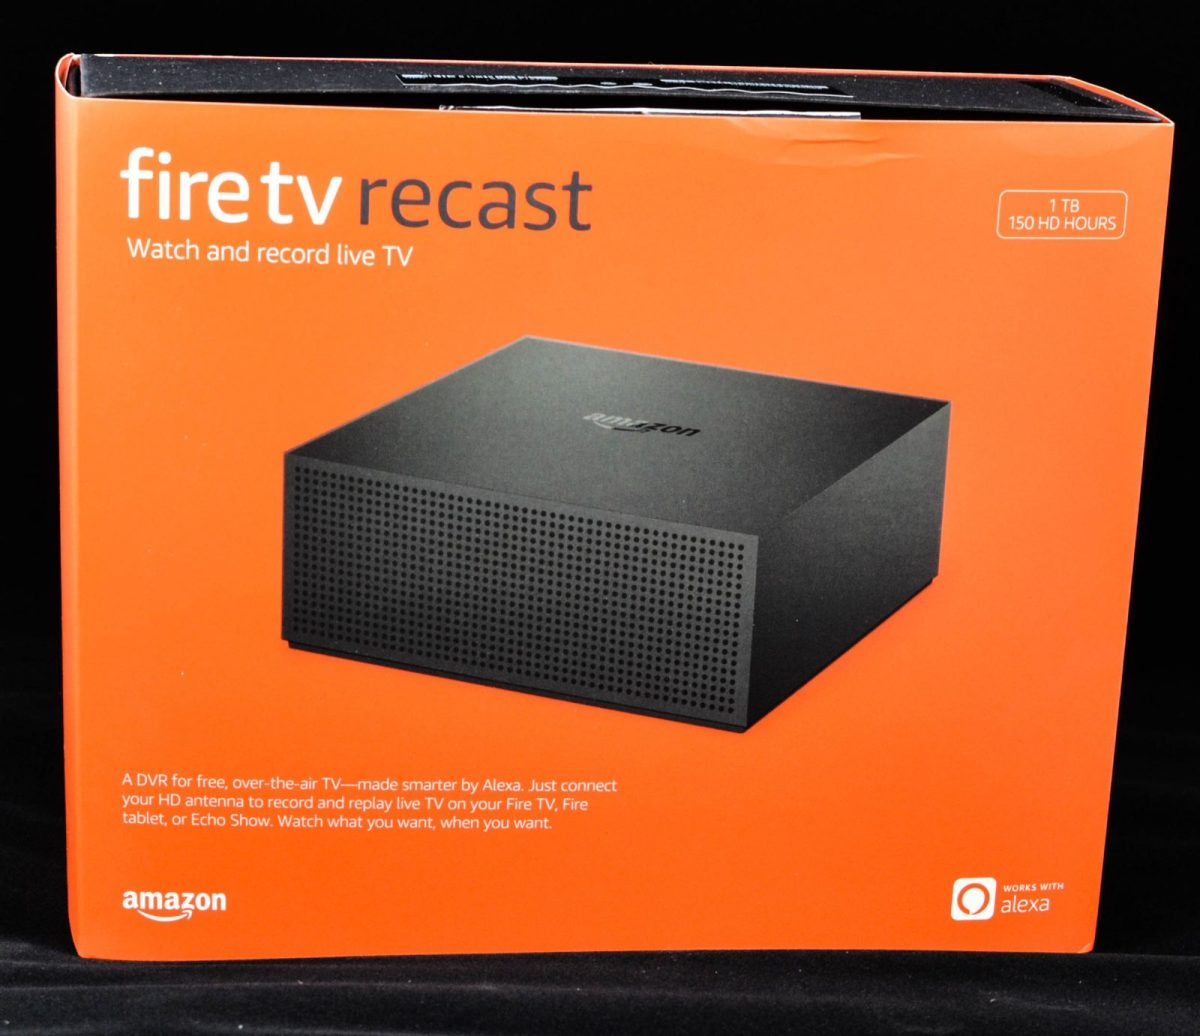 The Amazon Fire TV Recast.